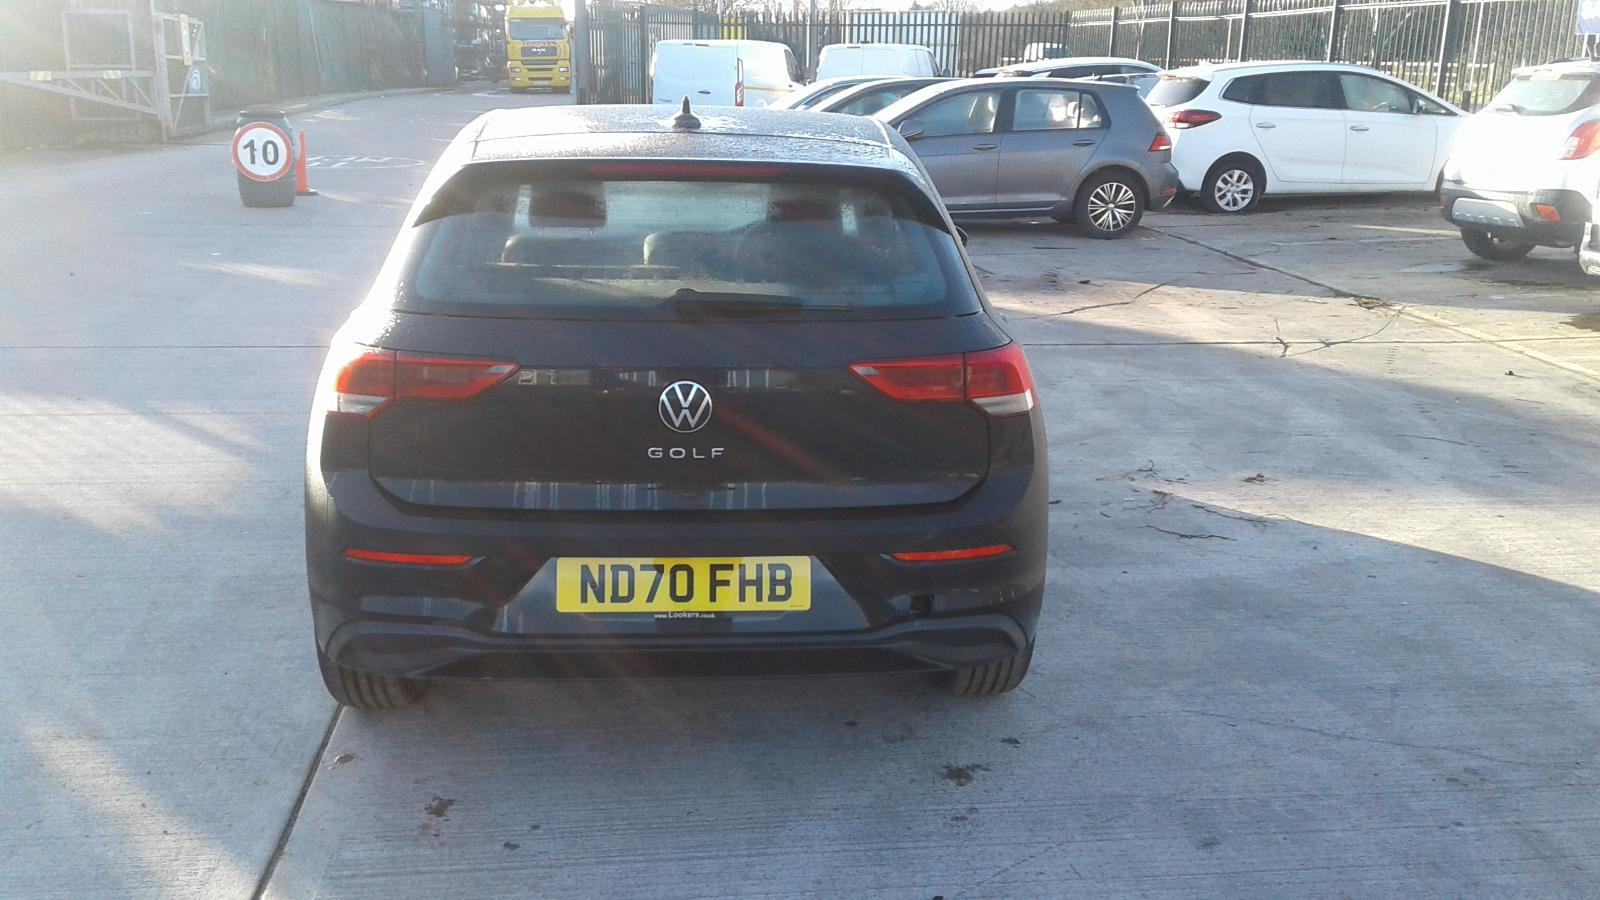 2020 MK8 GOLF FOR SALE £11,800 ONLY 220 MILES ON IT Image